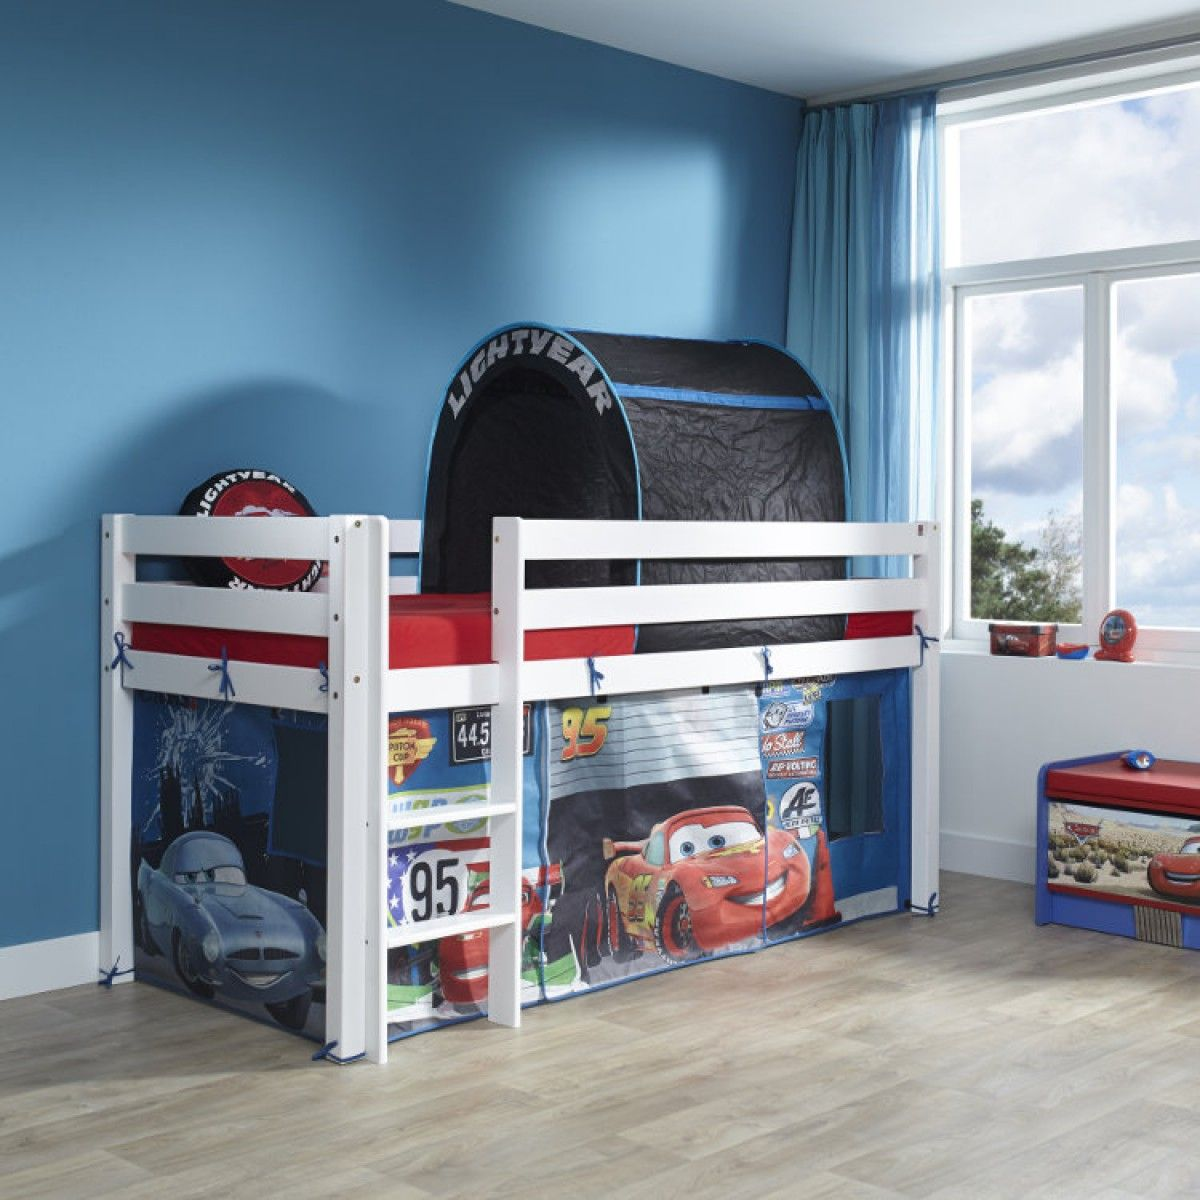 le lit cars merveillera la chambre de votre petit gar on. Black Bedroom Furniture Sets. Home Design Ideas